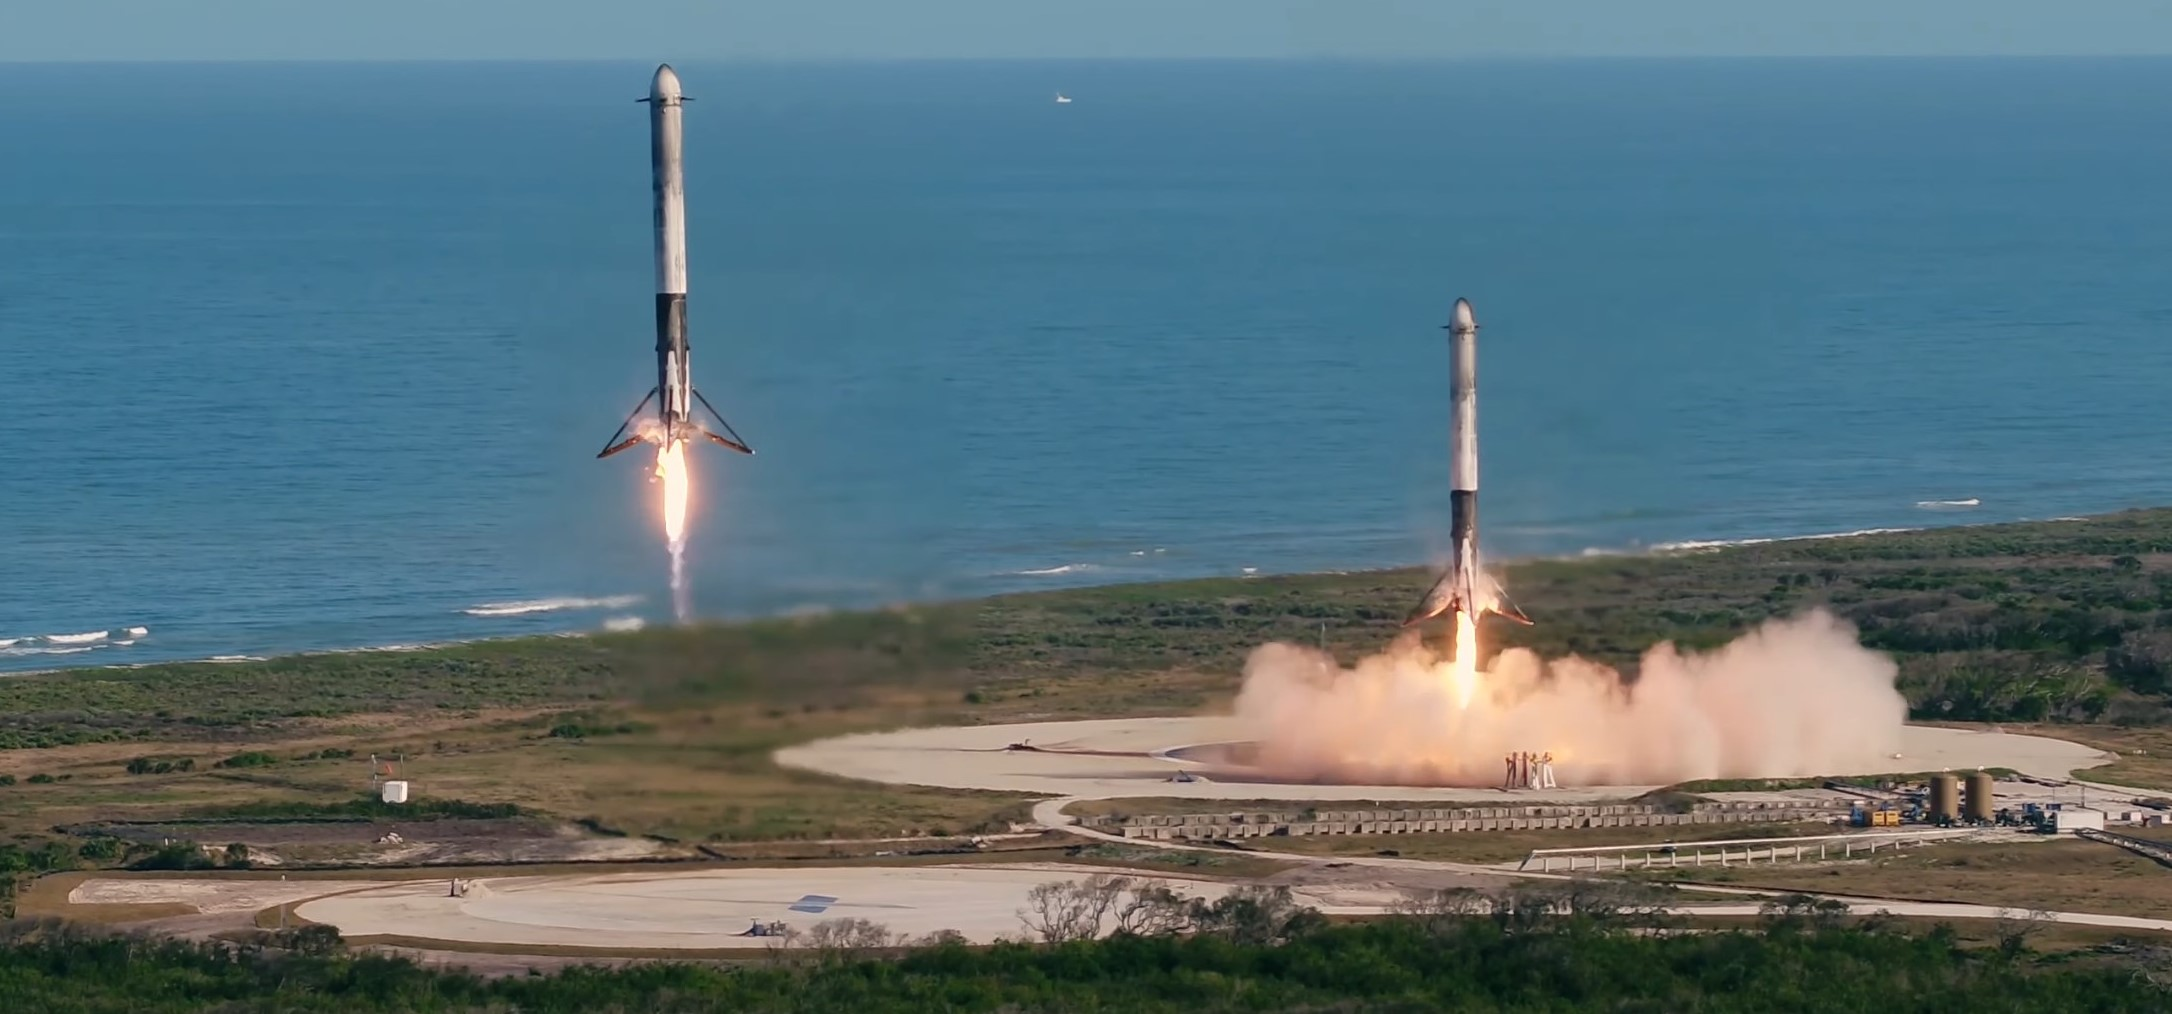 Spacex Celebrates Historic Rocket Landings With New 4k Footage